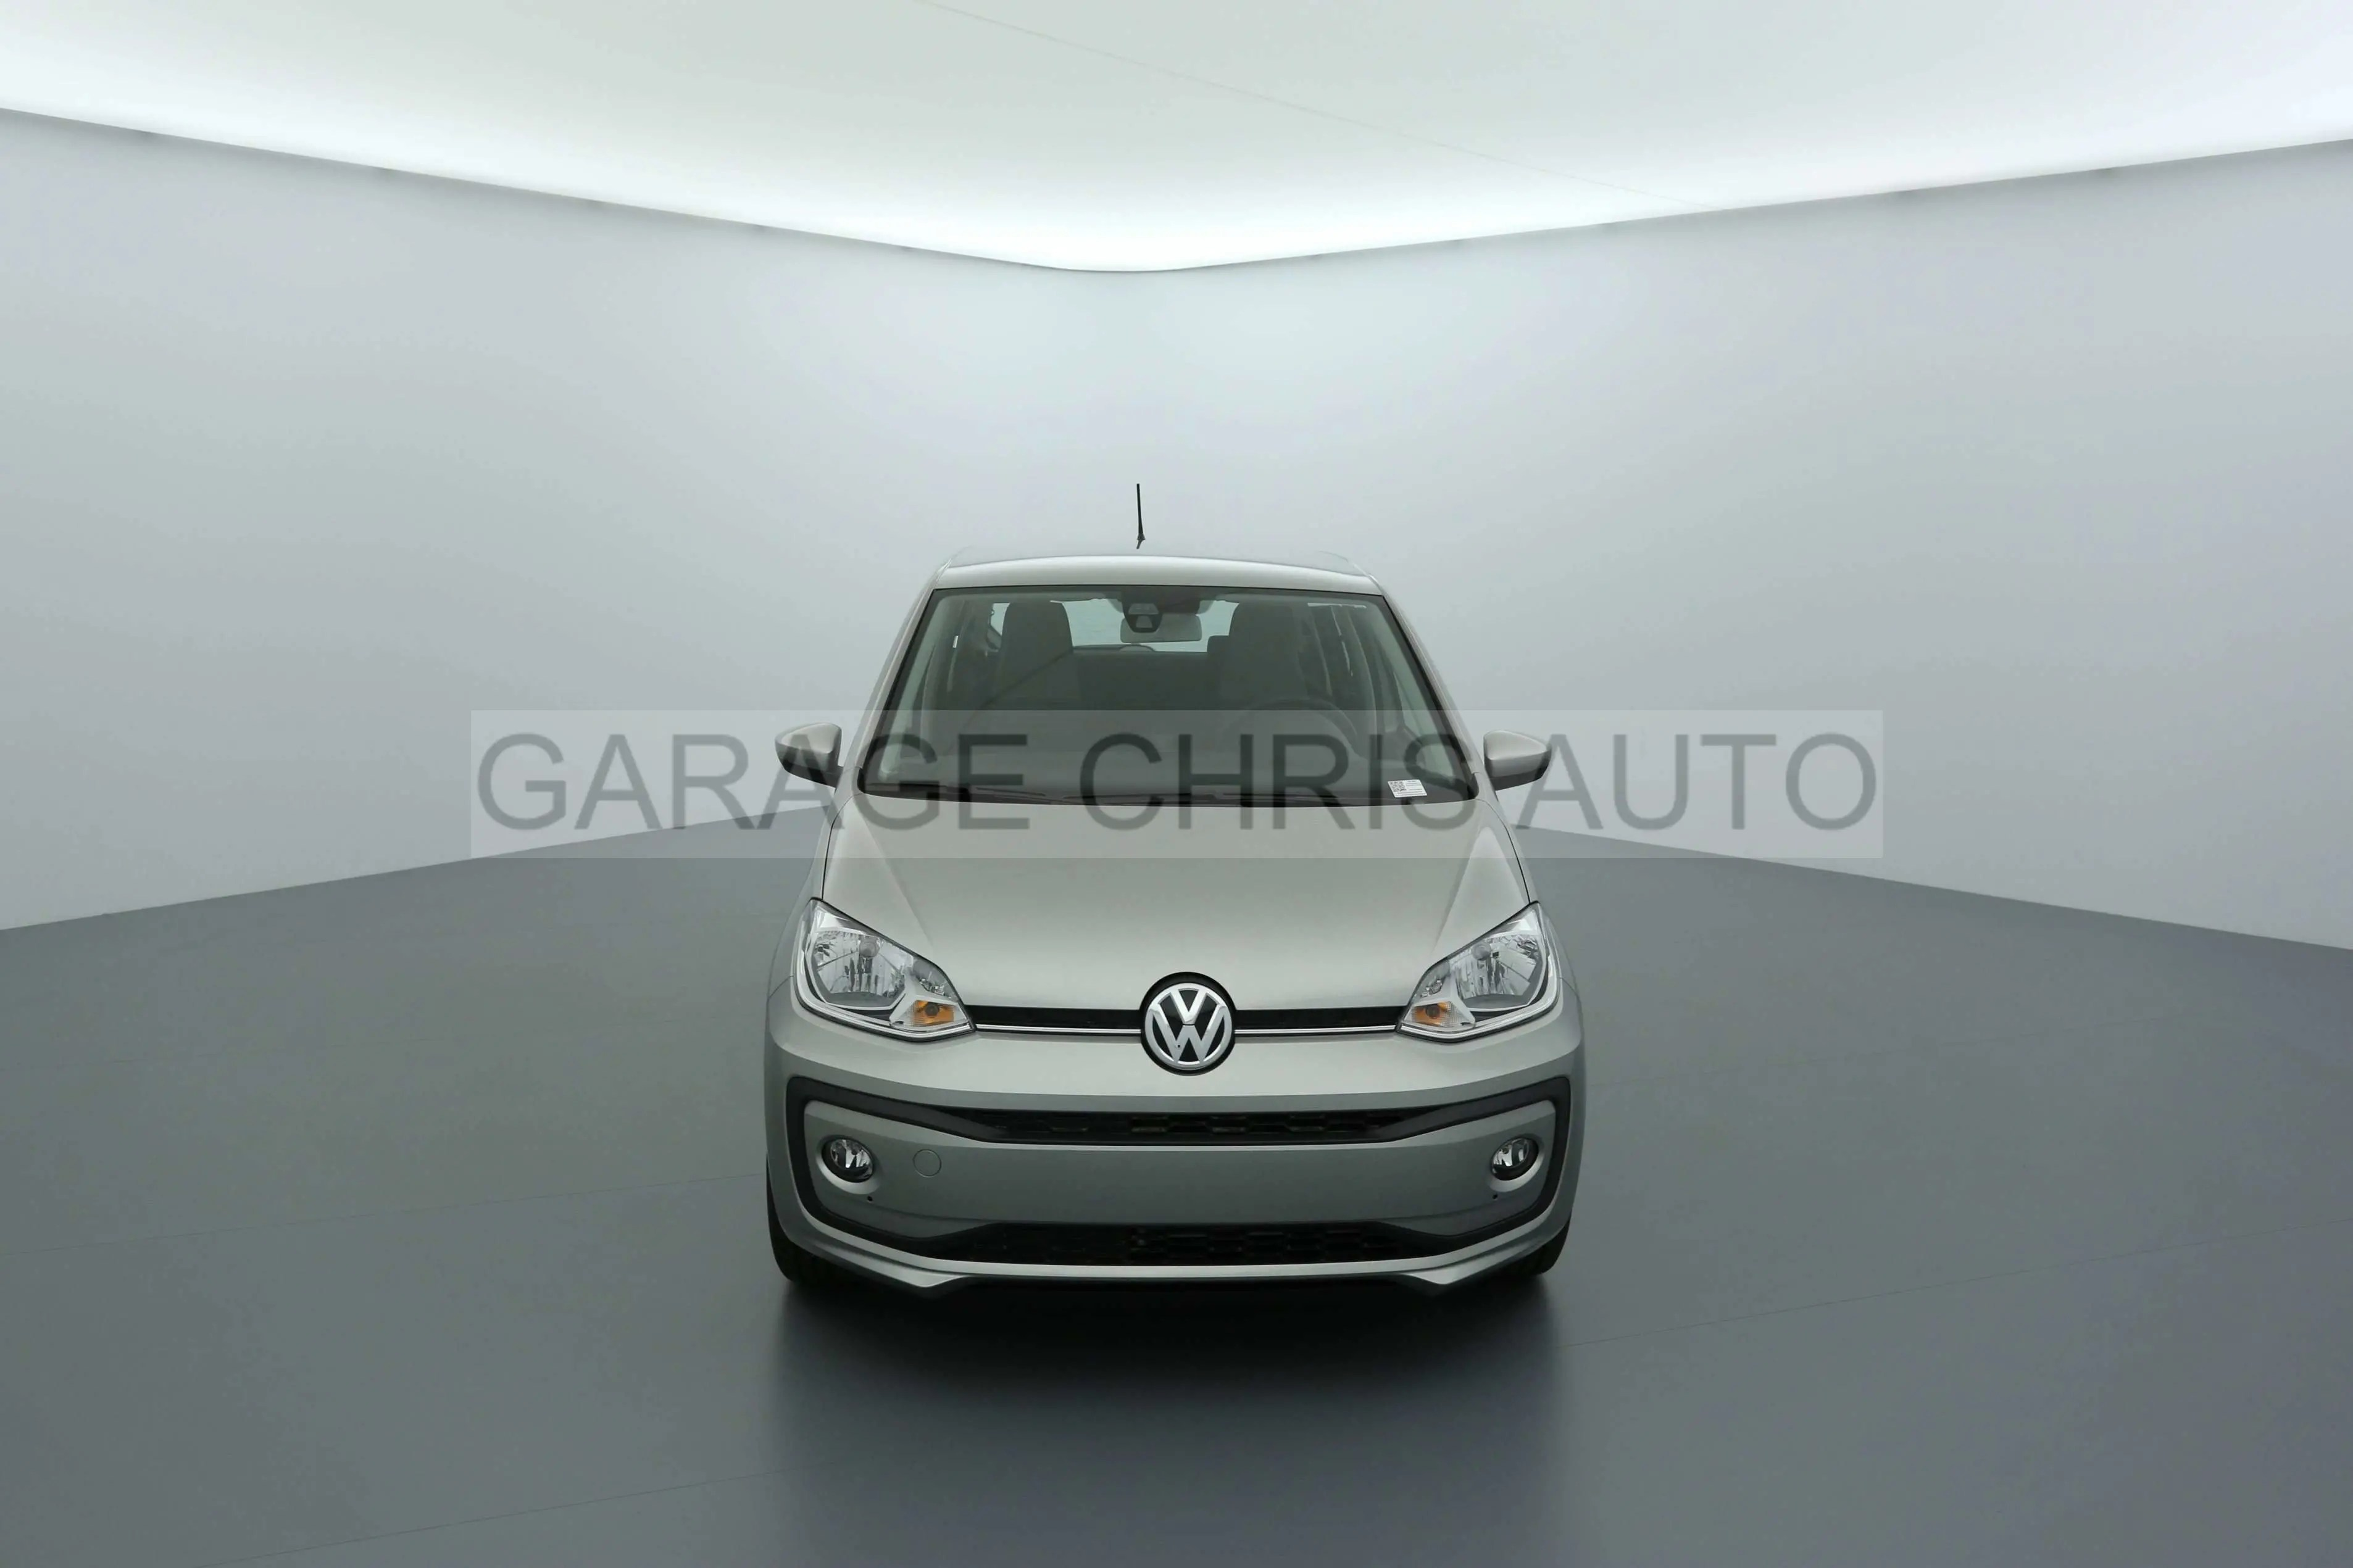 Garage Volkswagen Nanterre Volkswagen Up Saint Priest La Vetre 11809178 Garage Chris Auto